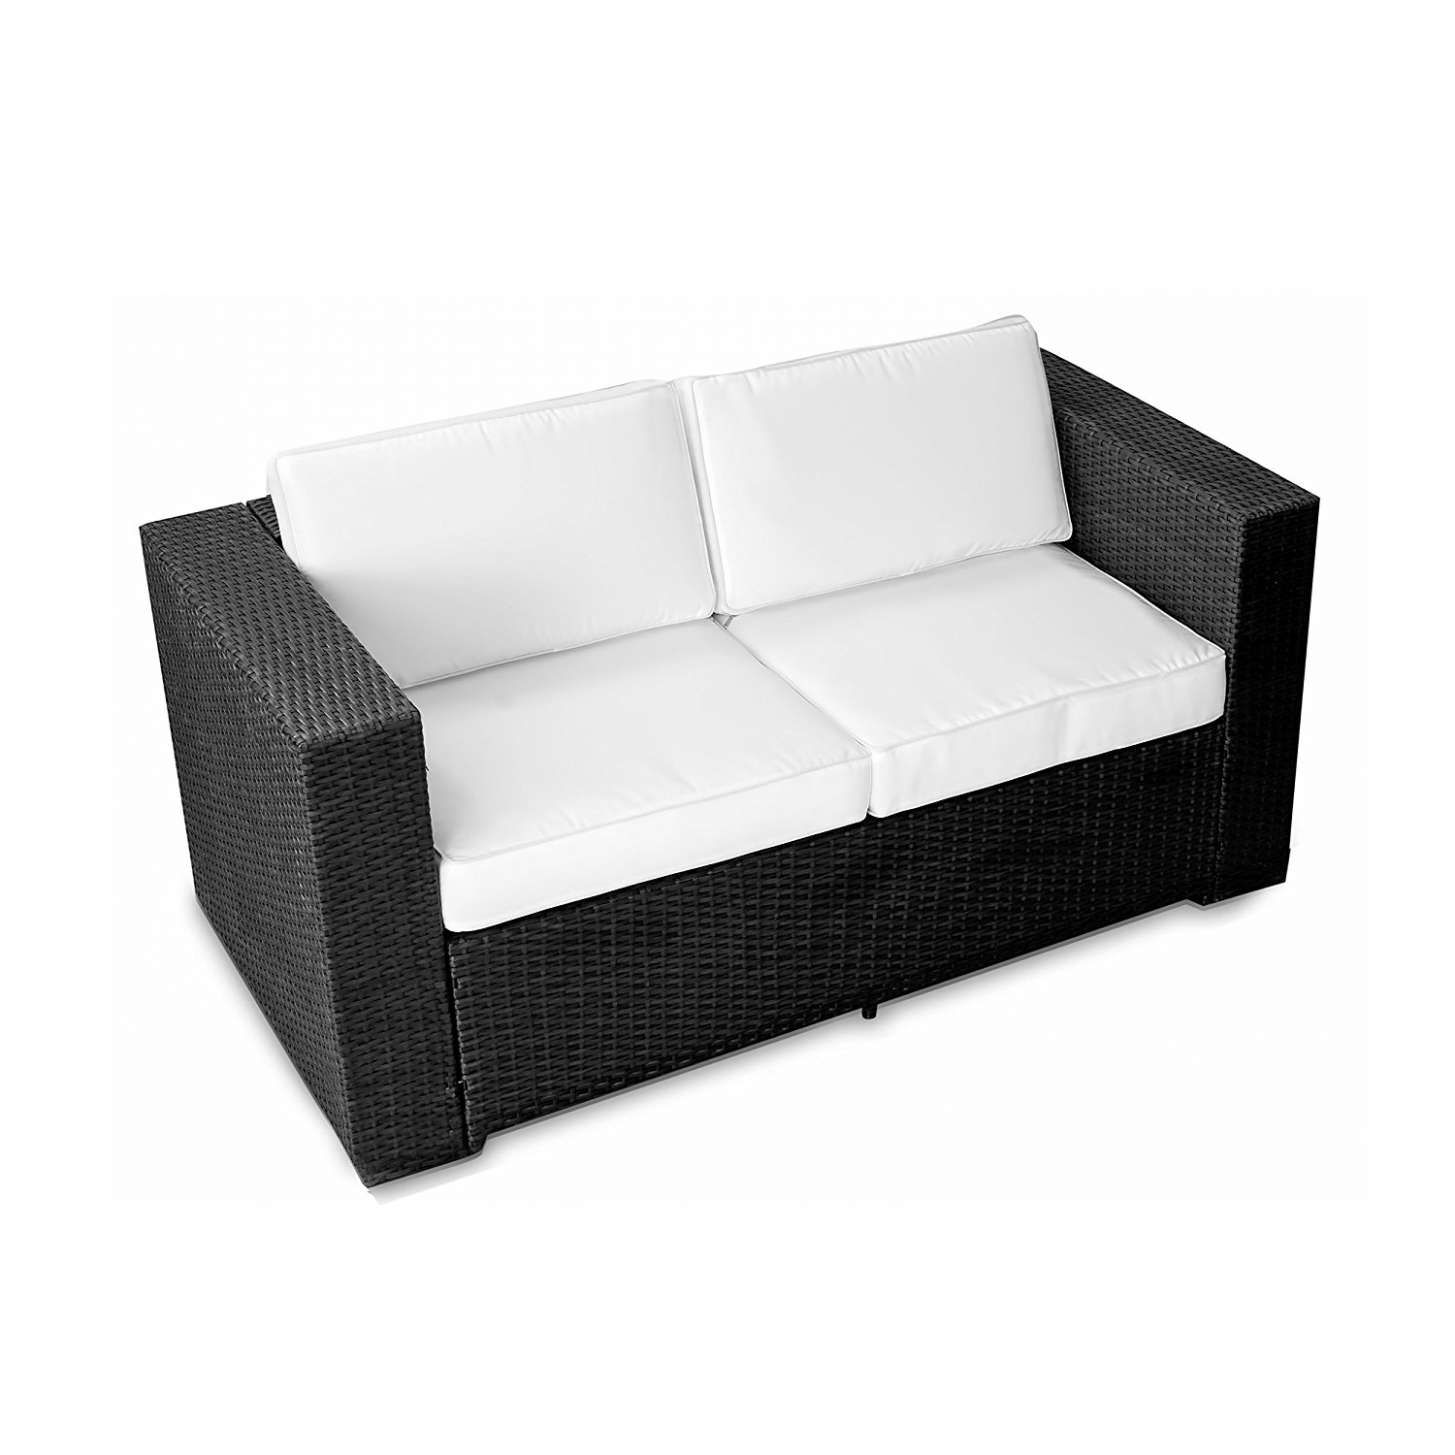 Sofa Husse 3 Sitzer Polyrattan Sofa 3 Sitzer Yct Projekte In 2020 Long Sofa Table Leather Sofa And Loveseat Long Sofa